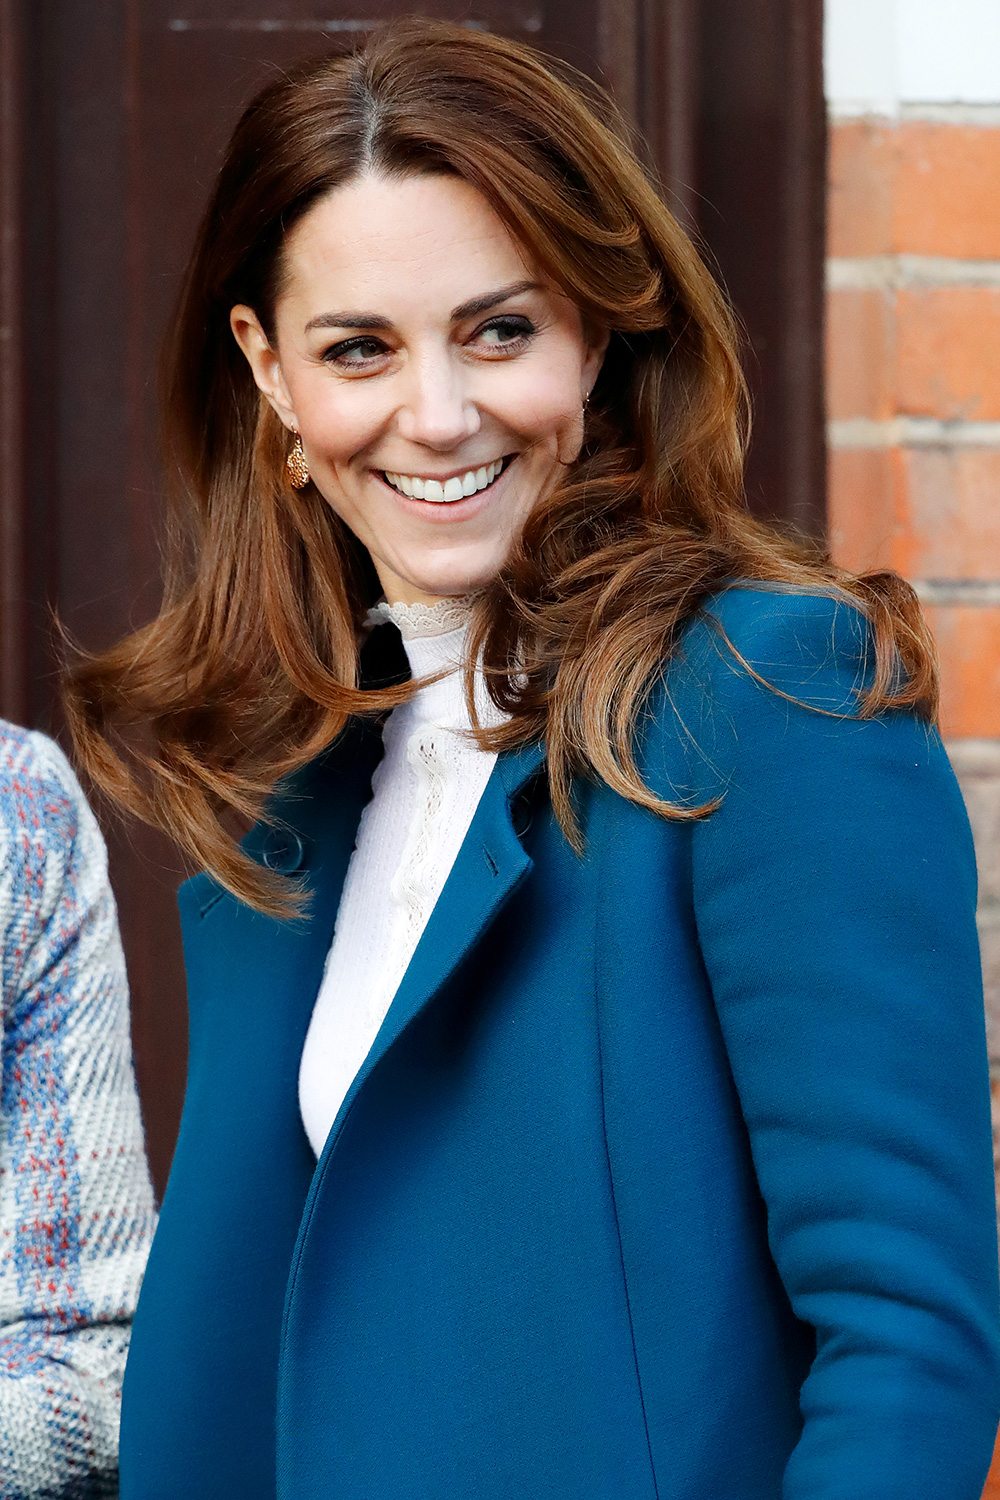 Catherine, Duchess of Cambridge visits LEYF (London Early Years Foundation) Stockwell Gardens Nursery & Pre-School on January 29, 2020 in London, England